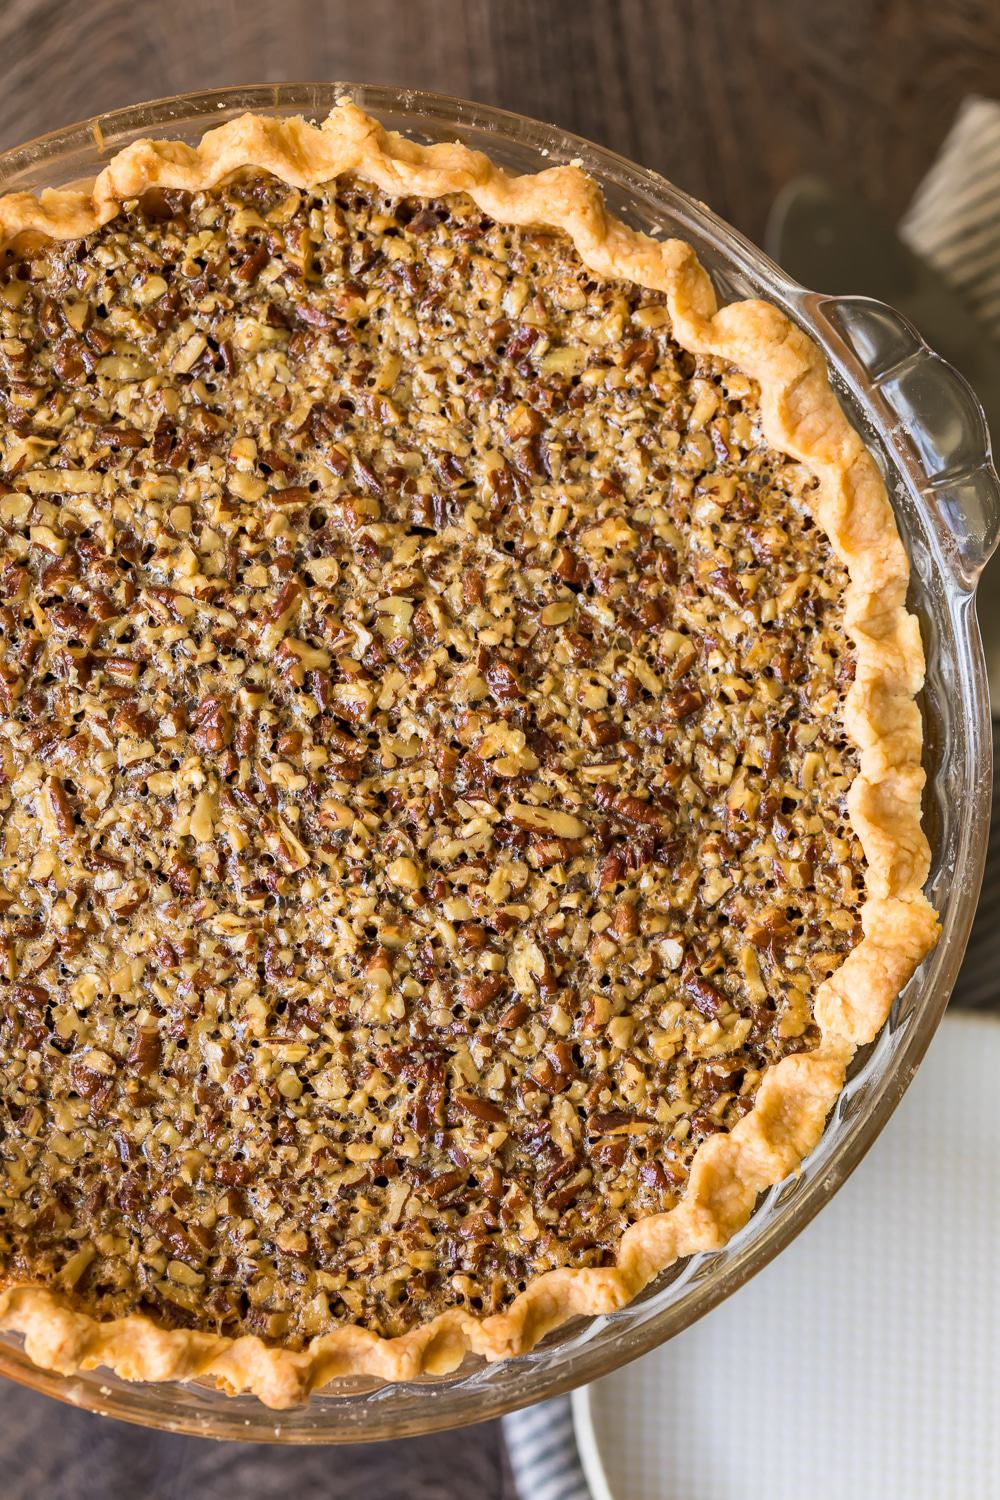 The pecan pie right out of the oven